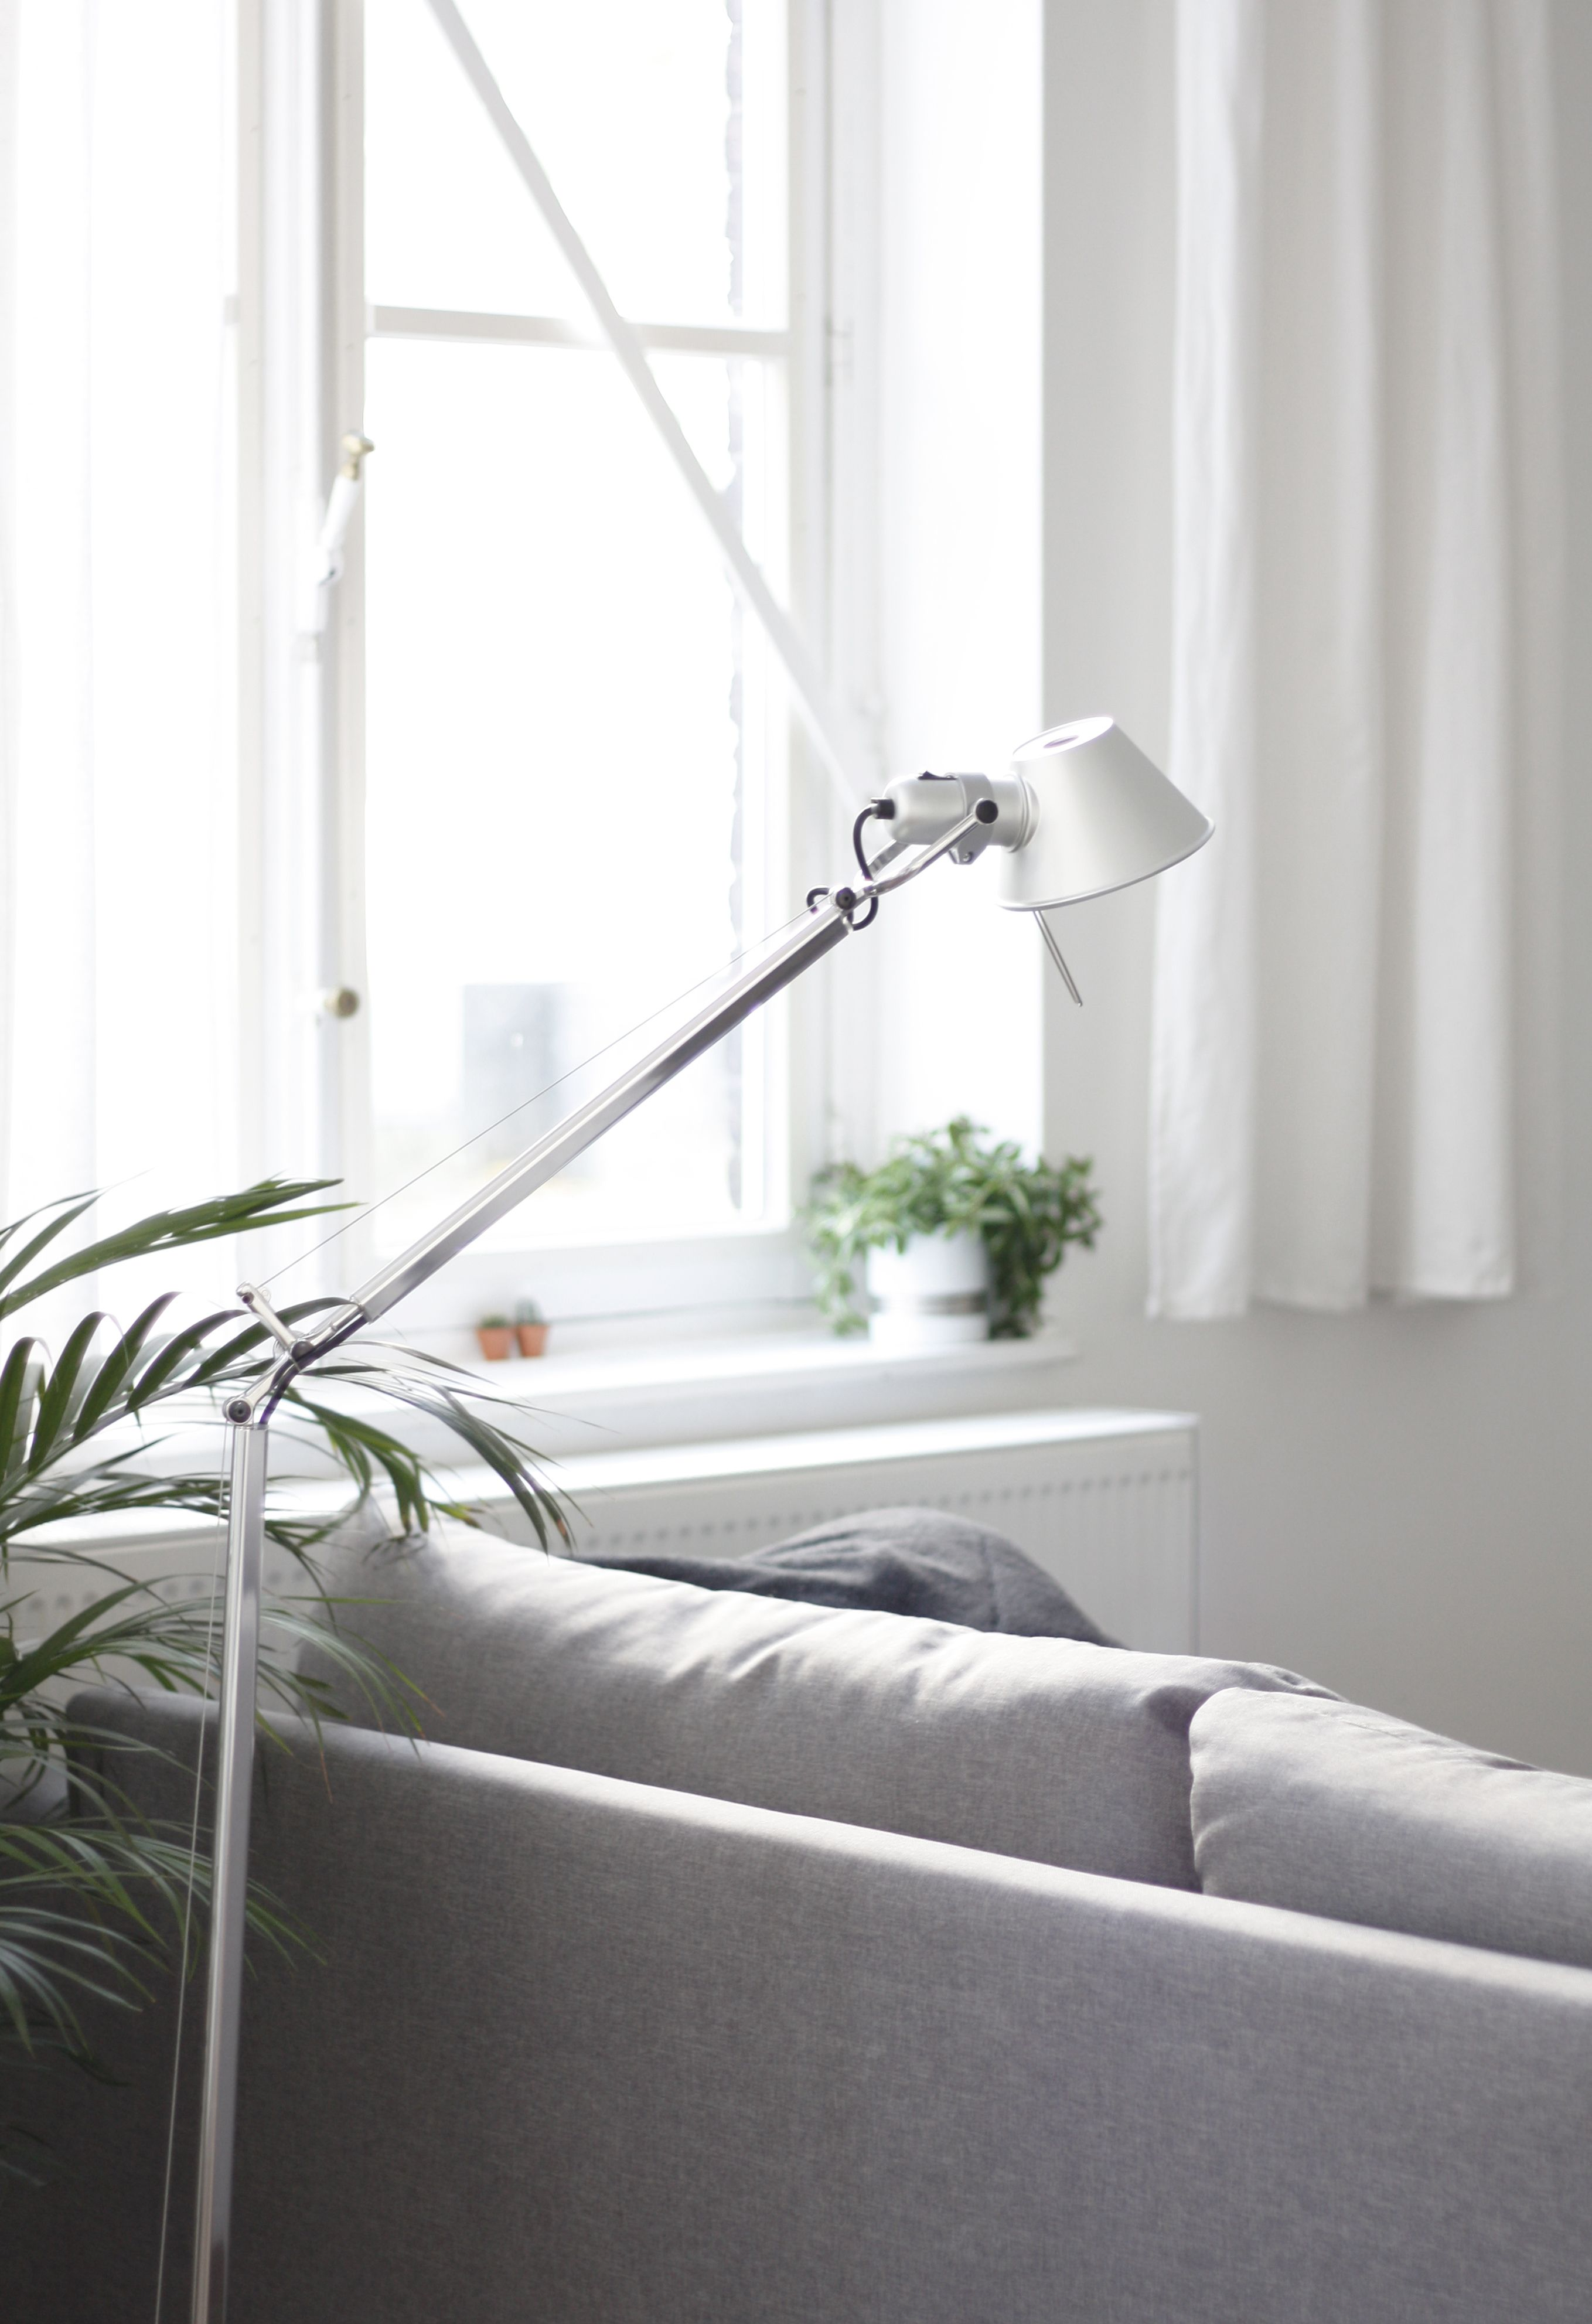 Artemide Tolomeo Lettura Artemide Lamp Desk Lamp Home Decor